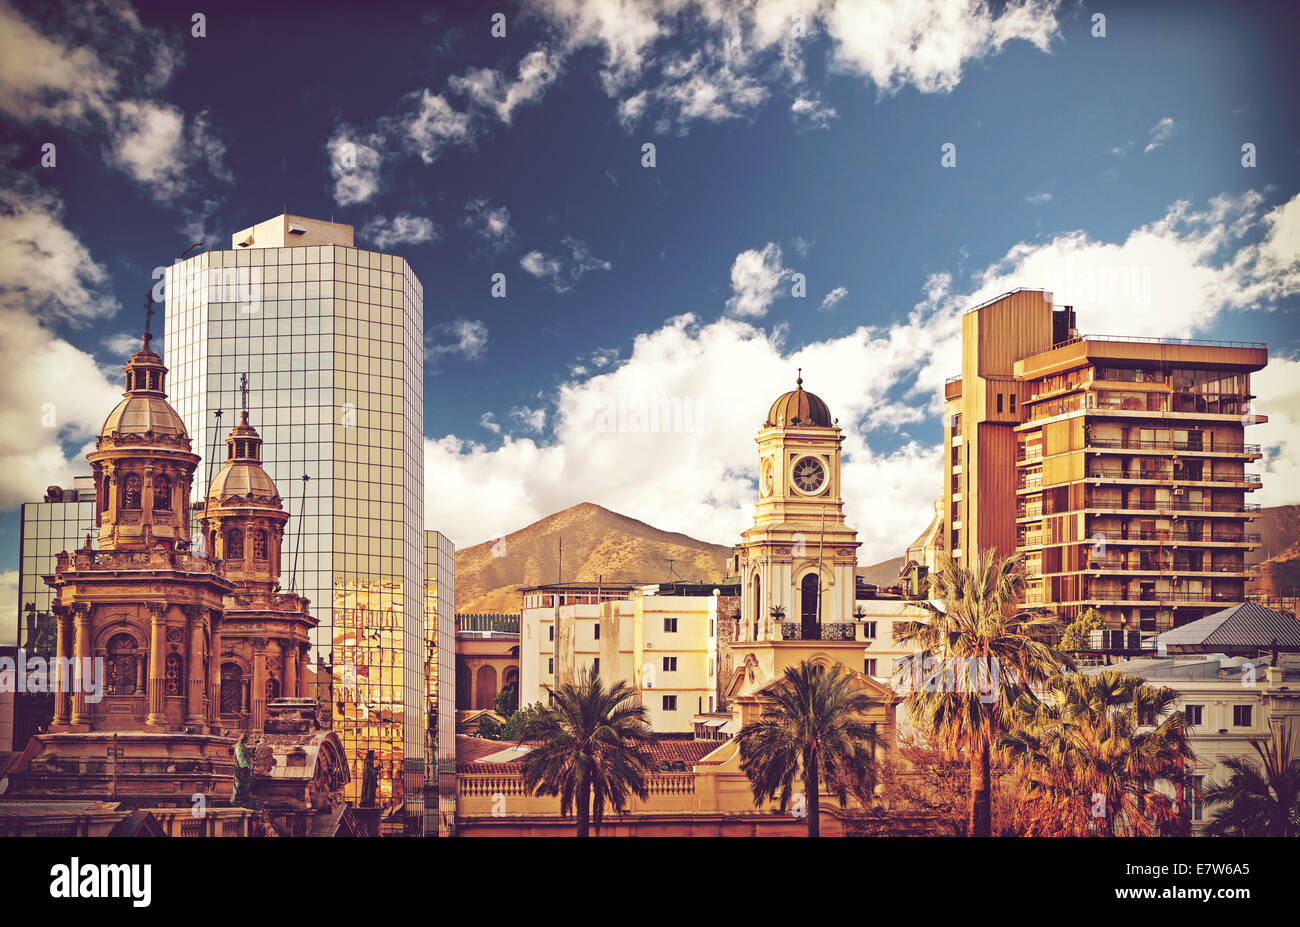 Vintage style picture of Santiago de Chile downtown, Chile. - Stock Image